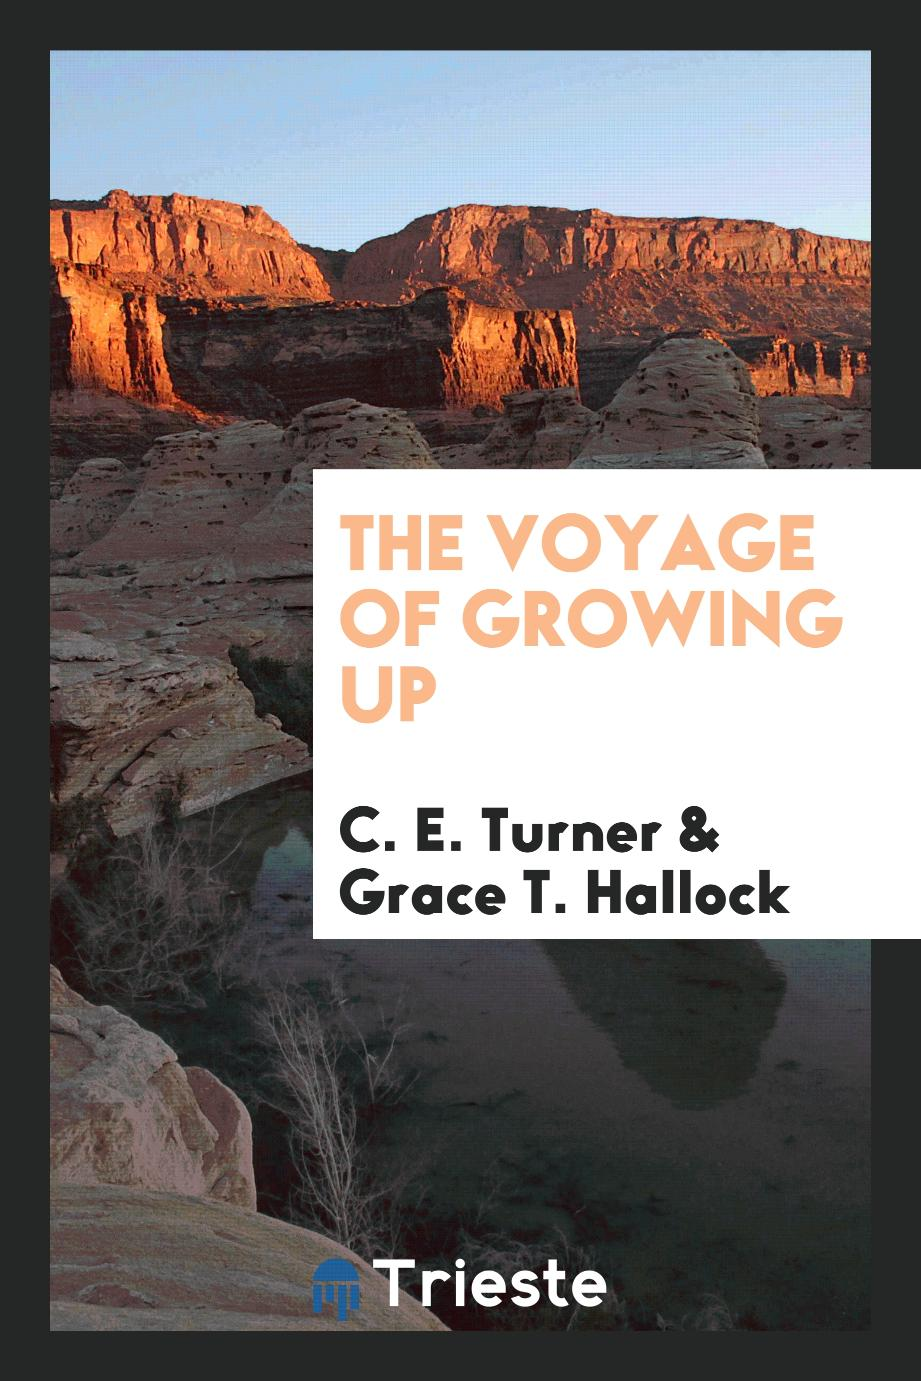 The voyage of growing up